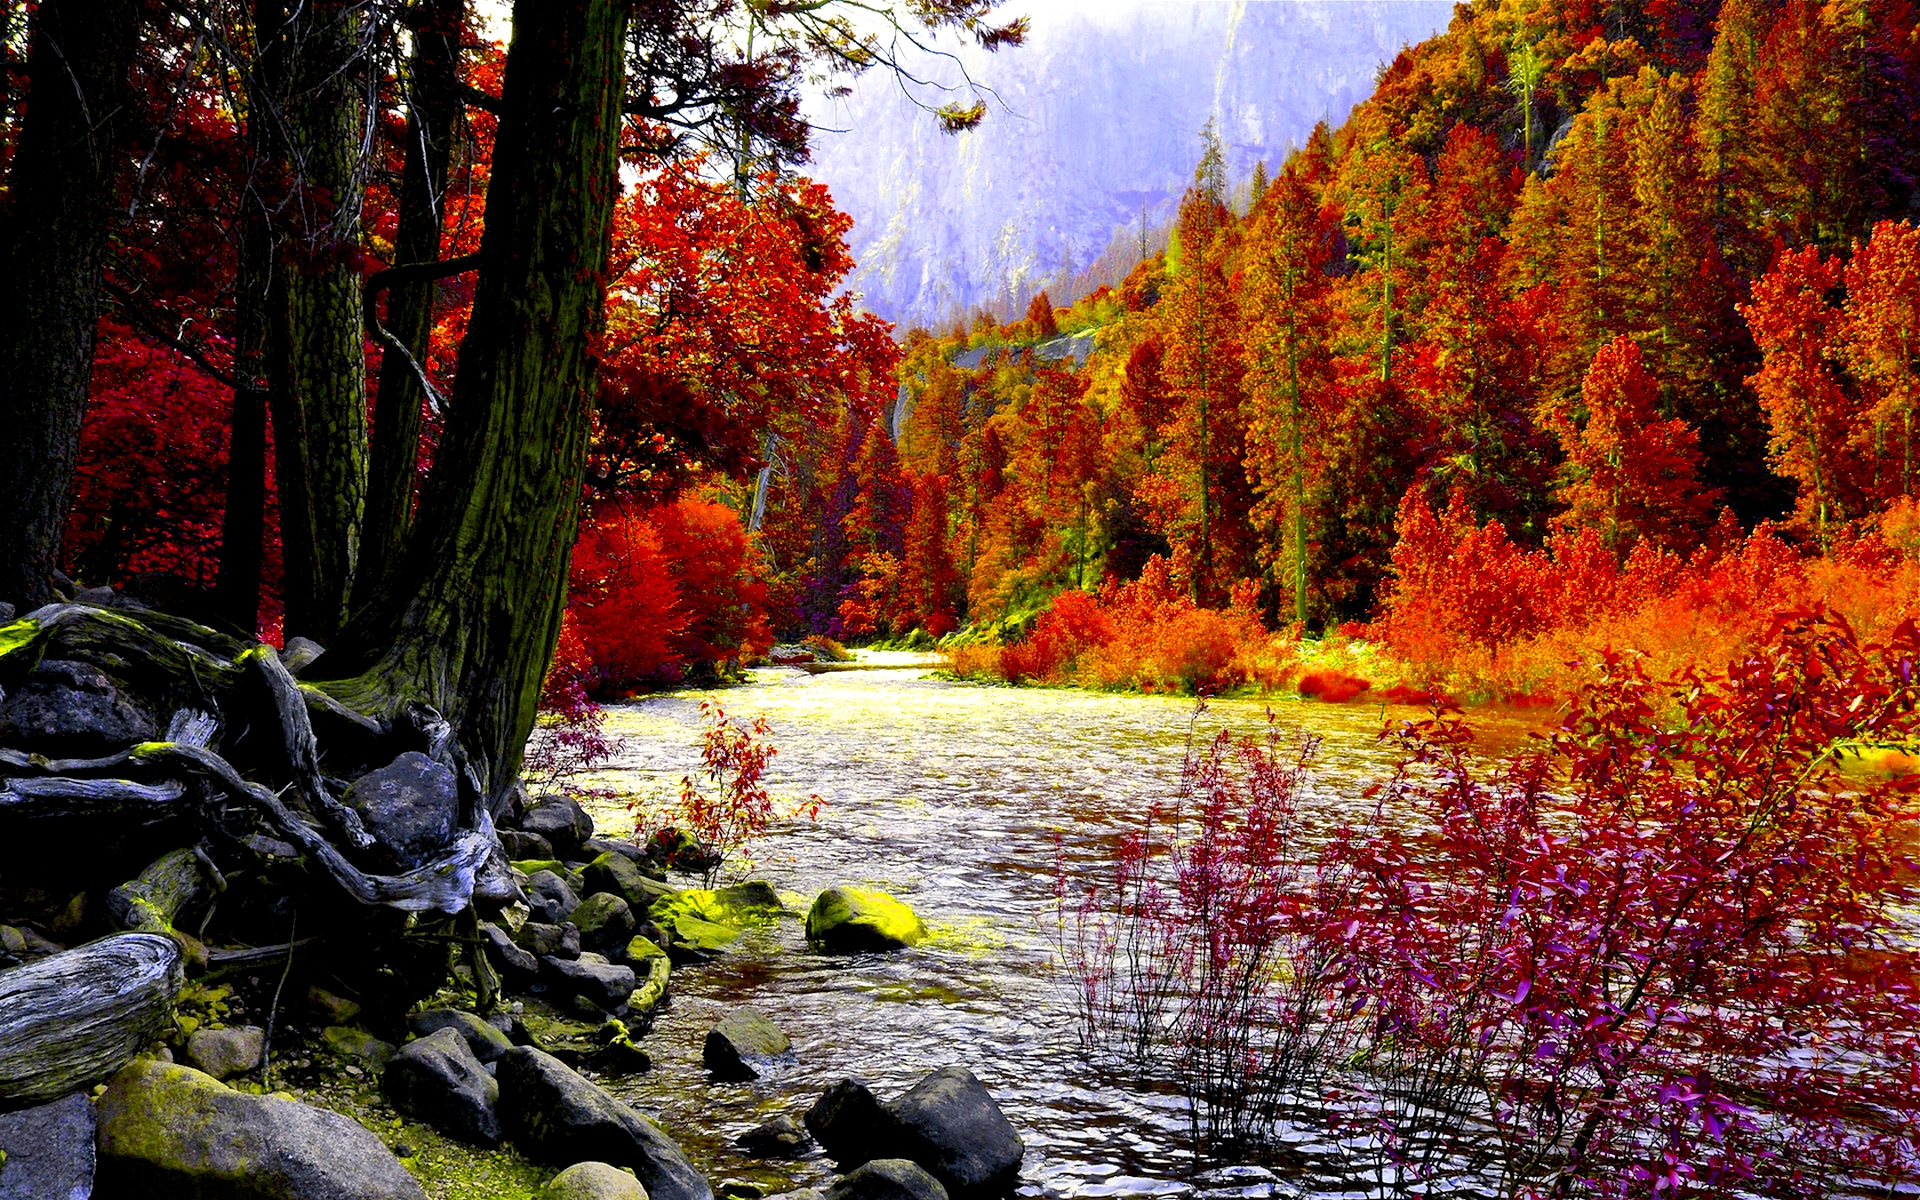 Autumn river photo